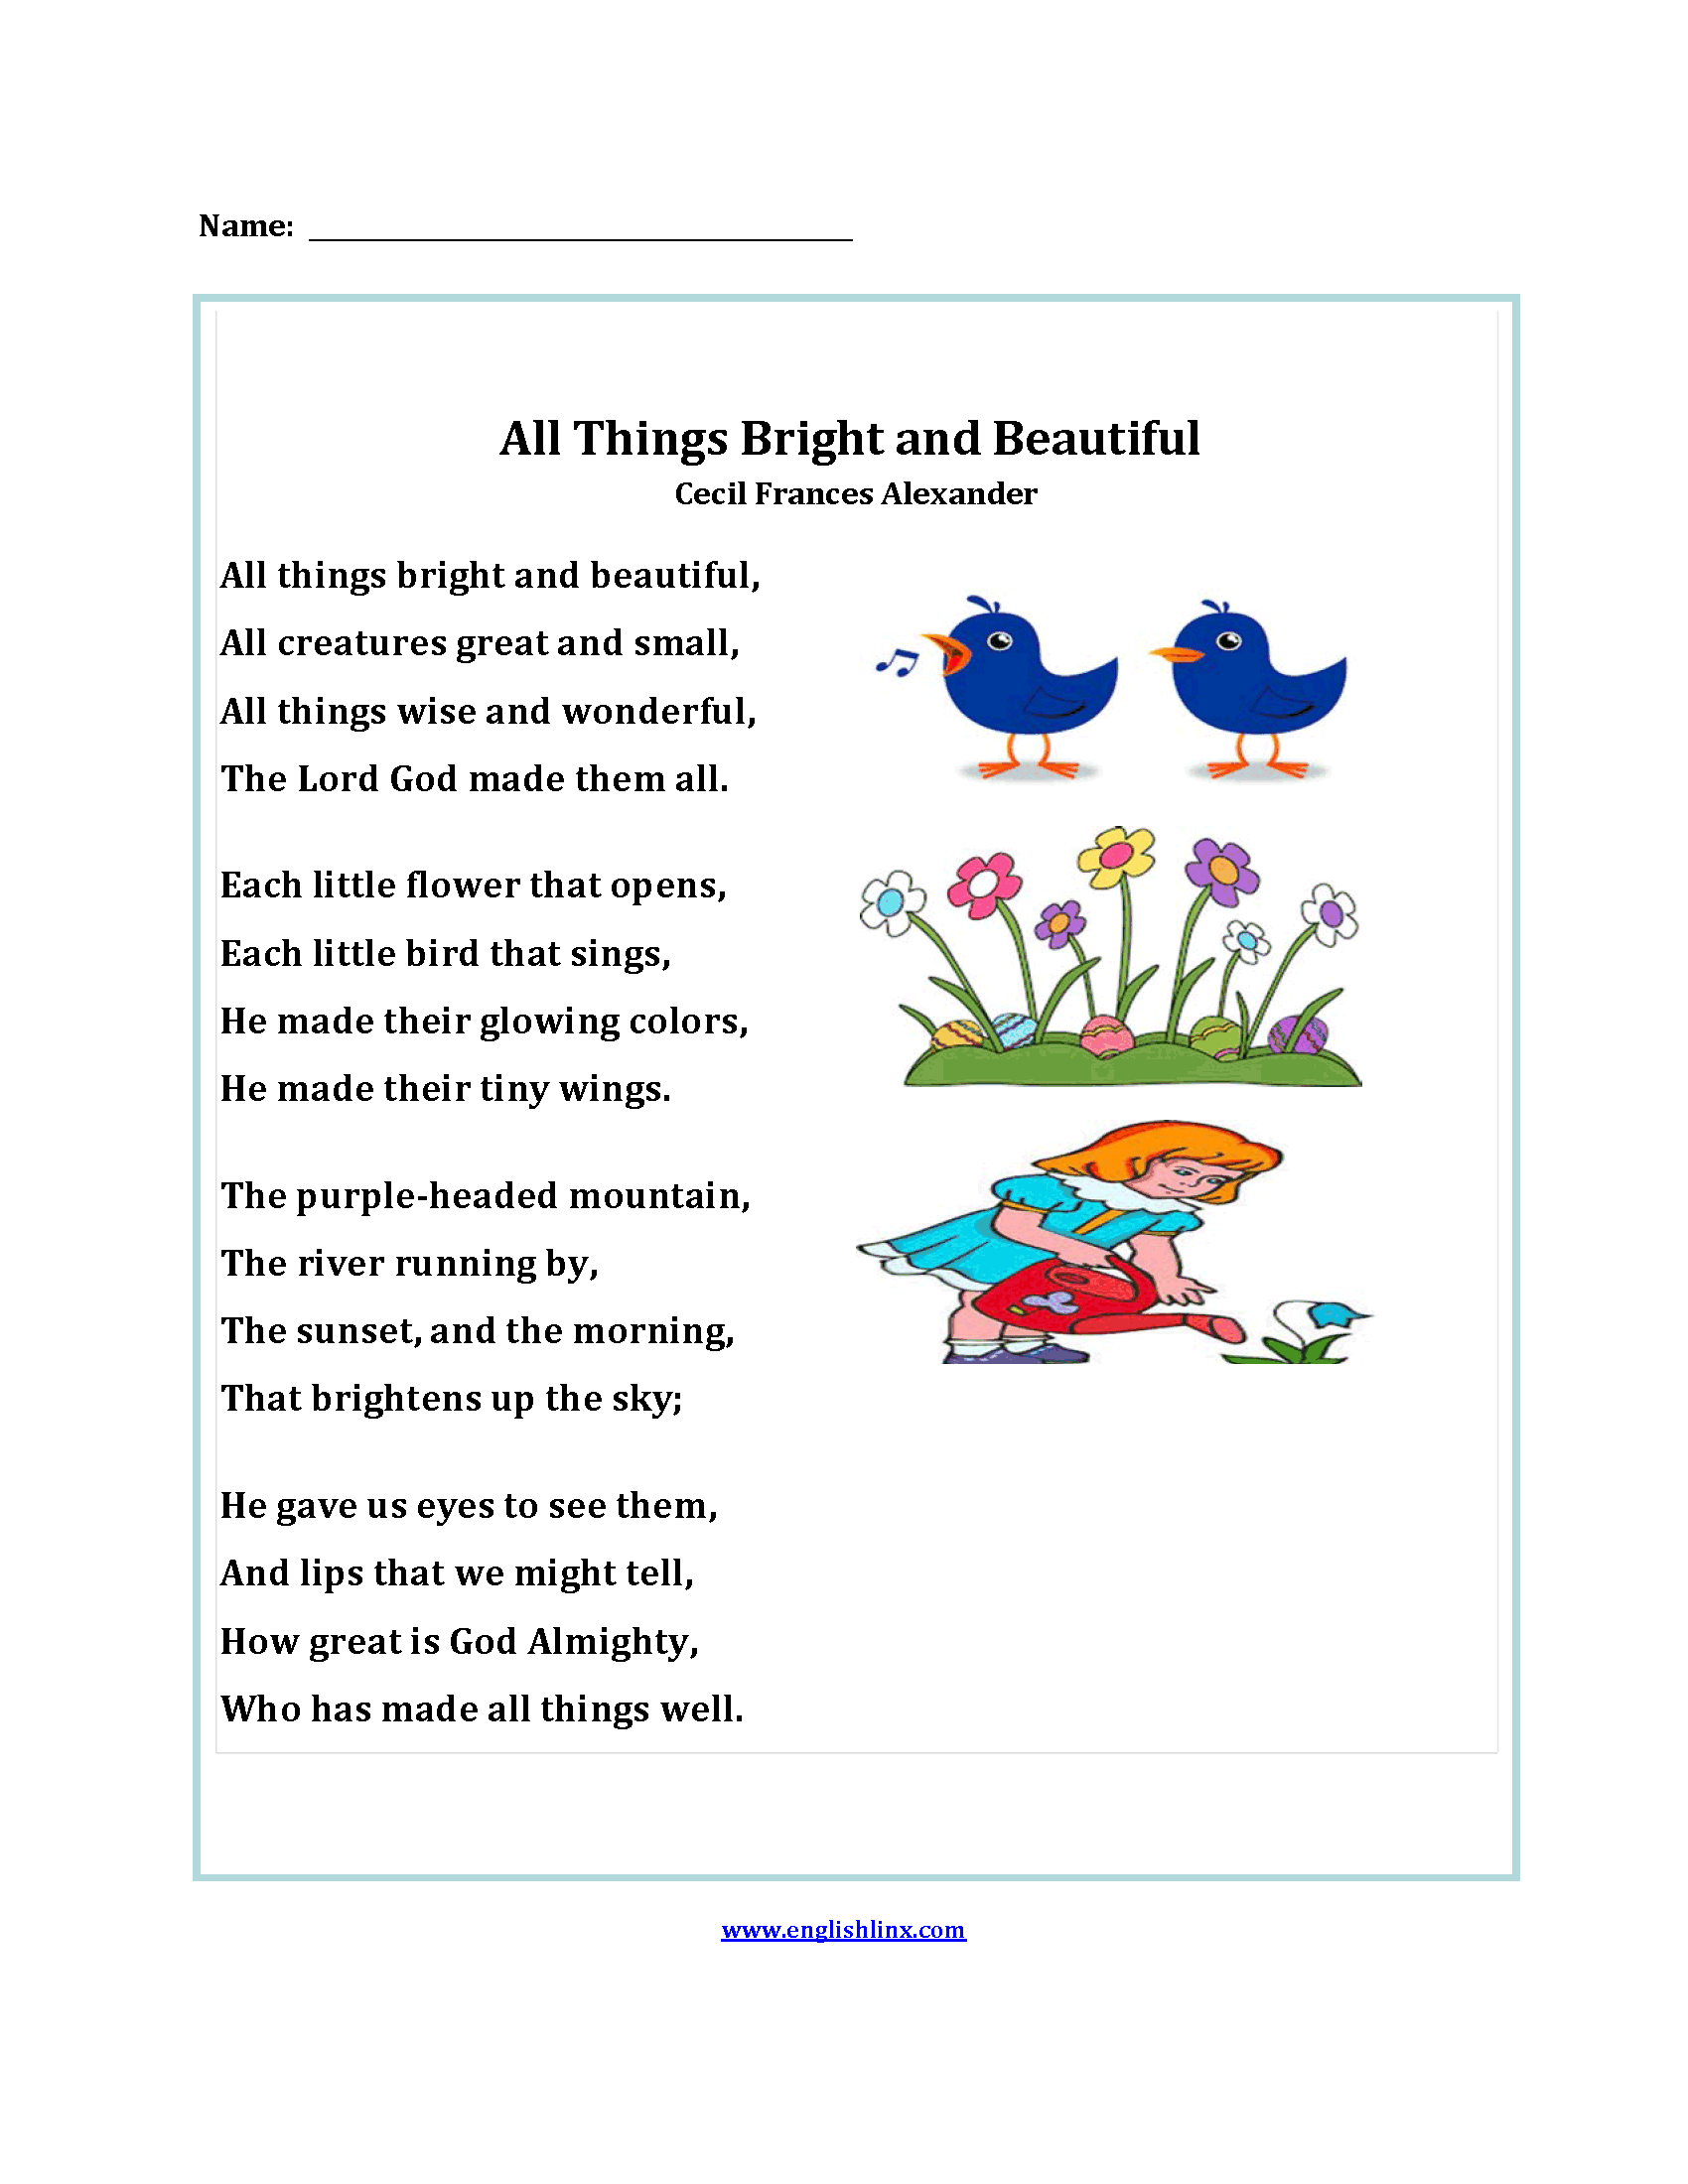 worksheet Imagery Worksheets all things bright and beautiful poetry worksheets lit worksheets